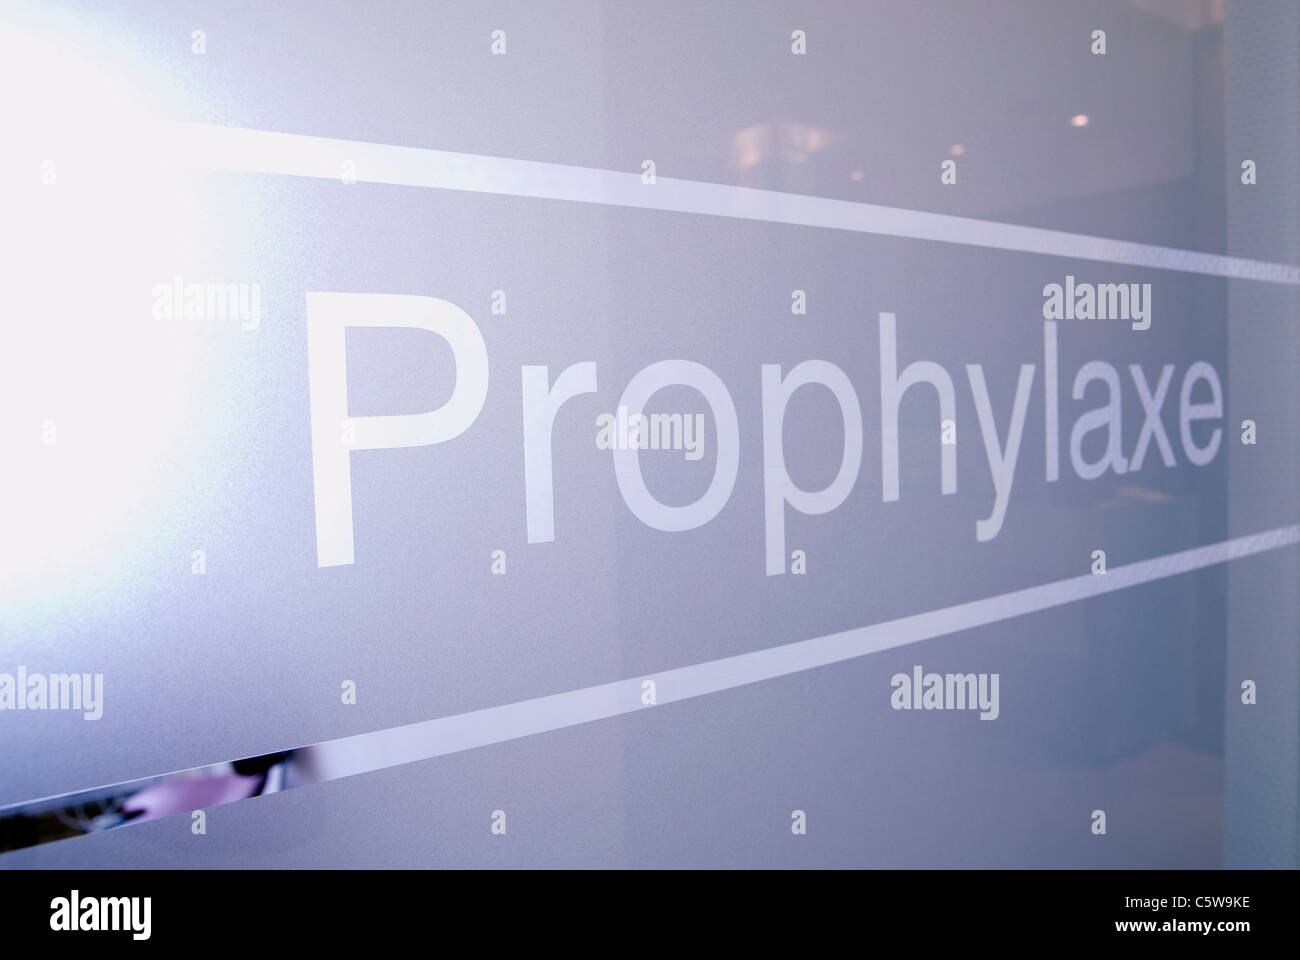 Dentist, Medical practice, Prophylaxis - Stock Image